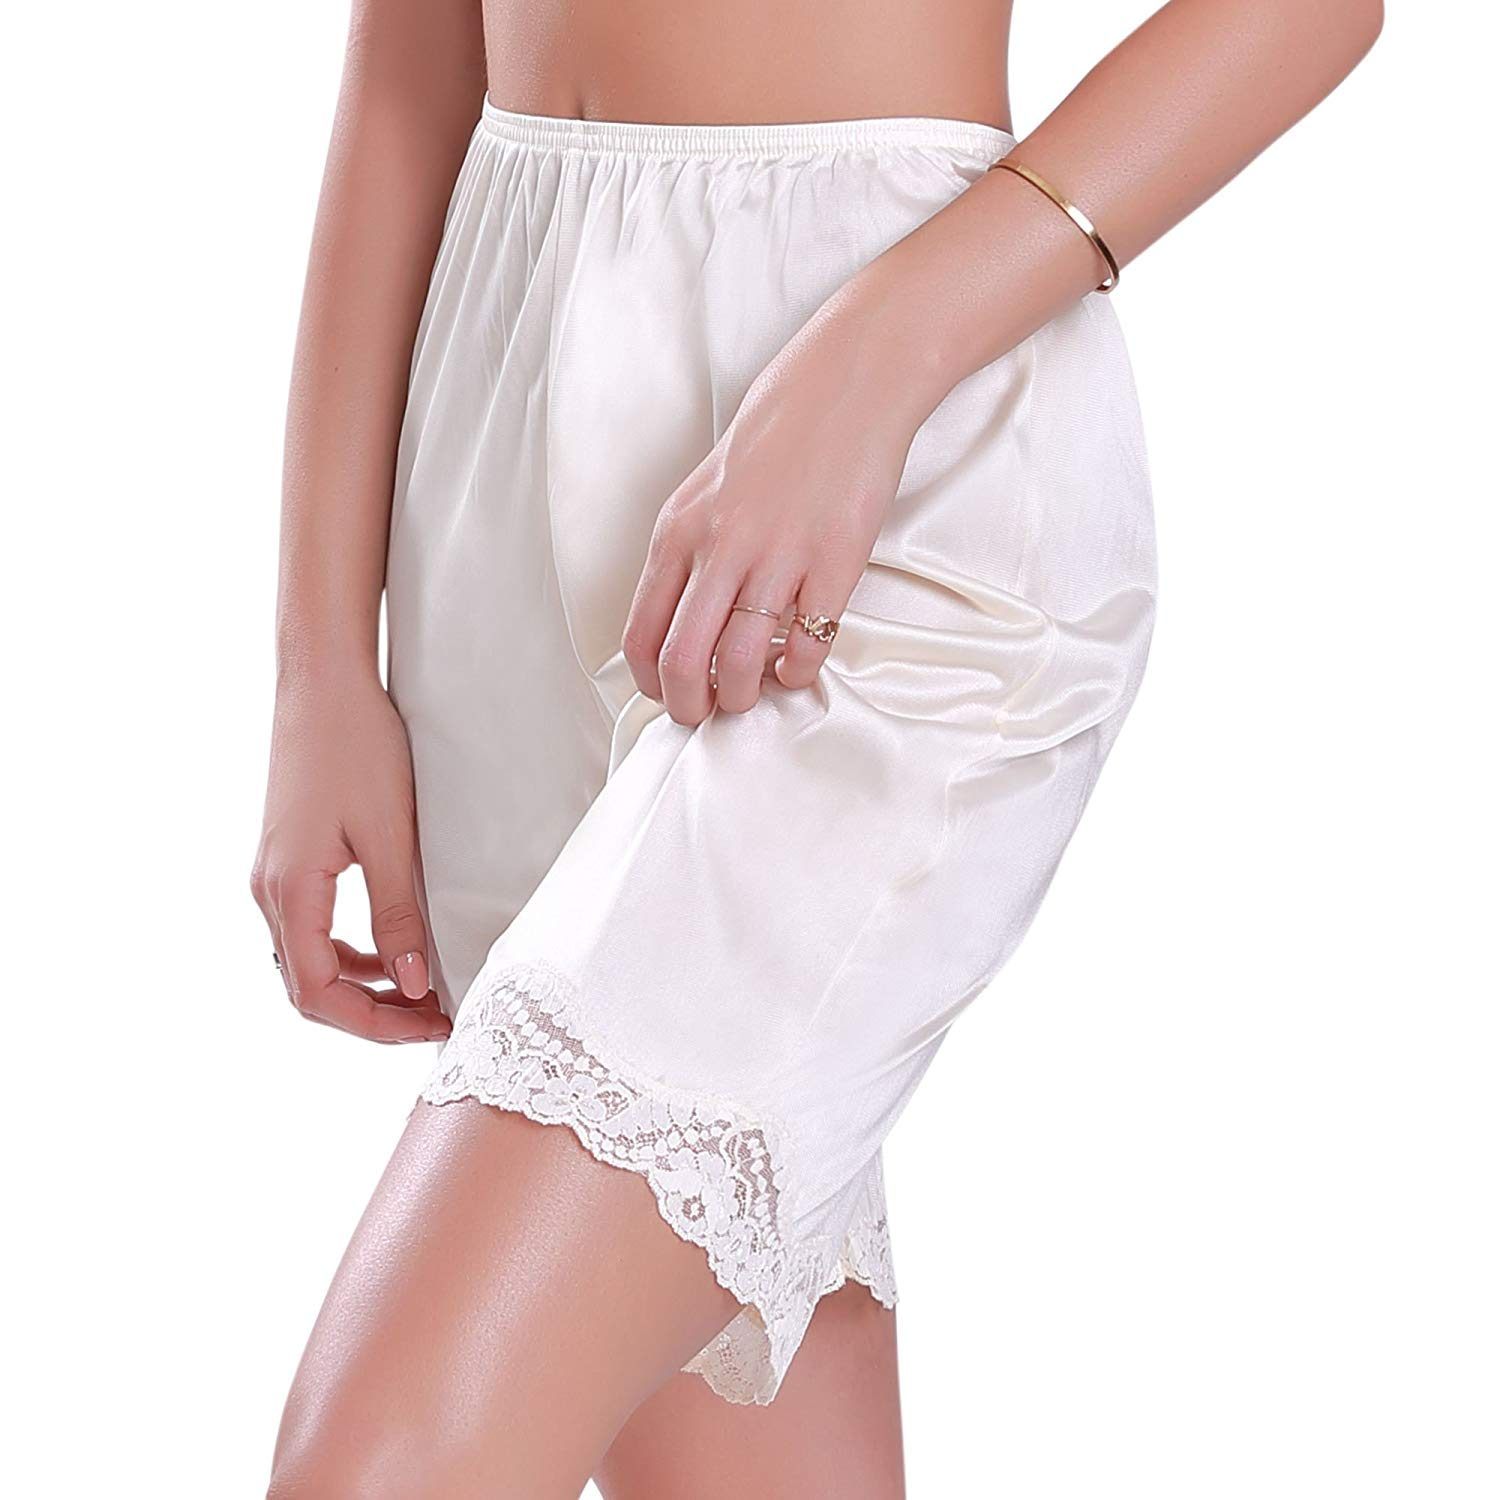 Illusion Women/'s Premium Nylon Daywear Bloomer Slip Pants With Lace Trim 1039